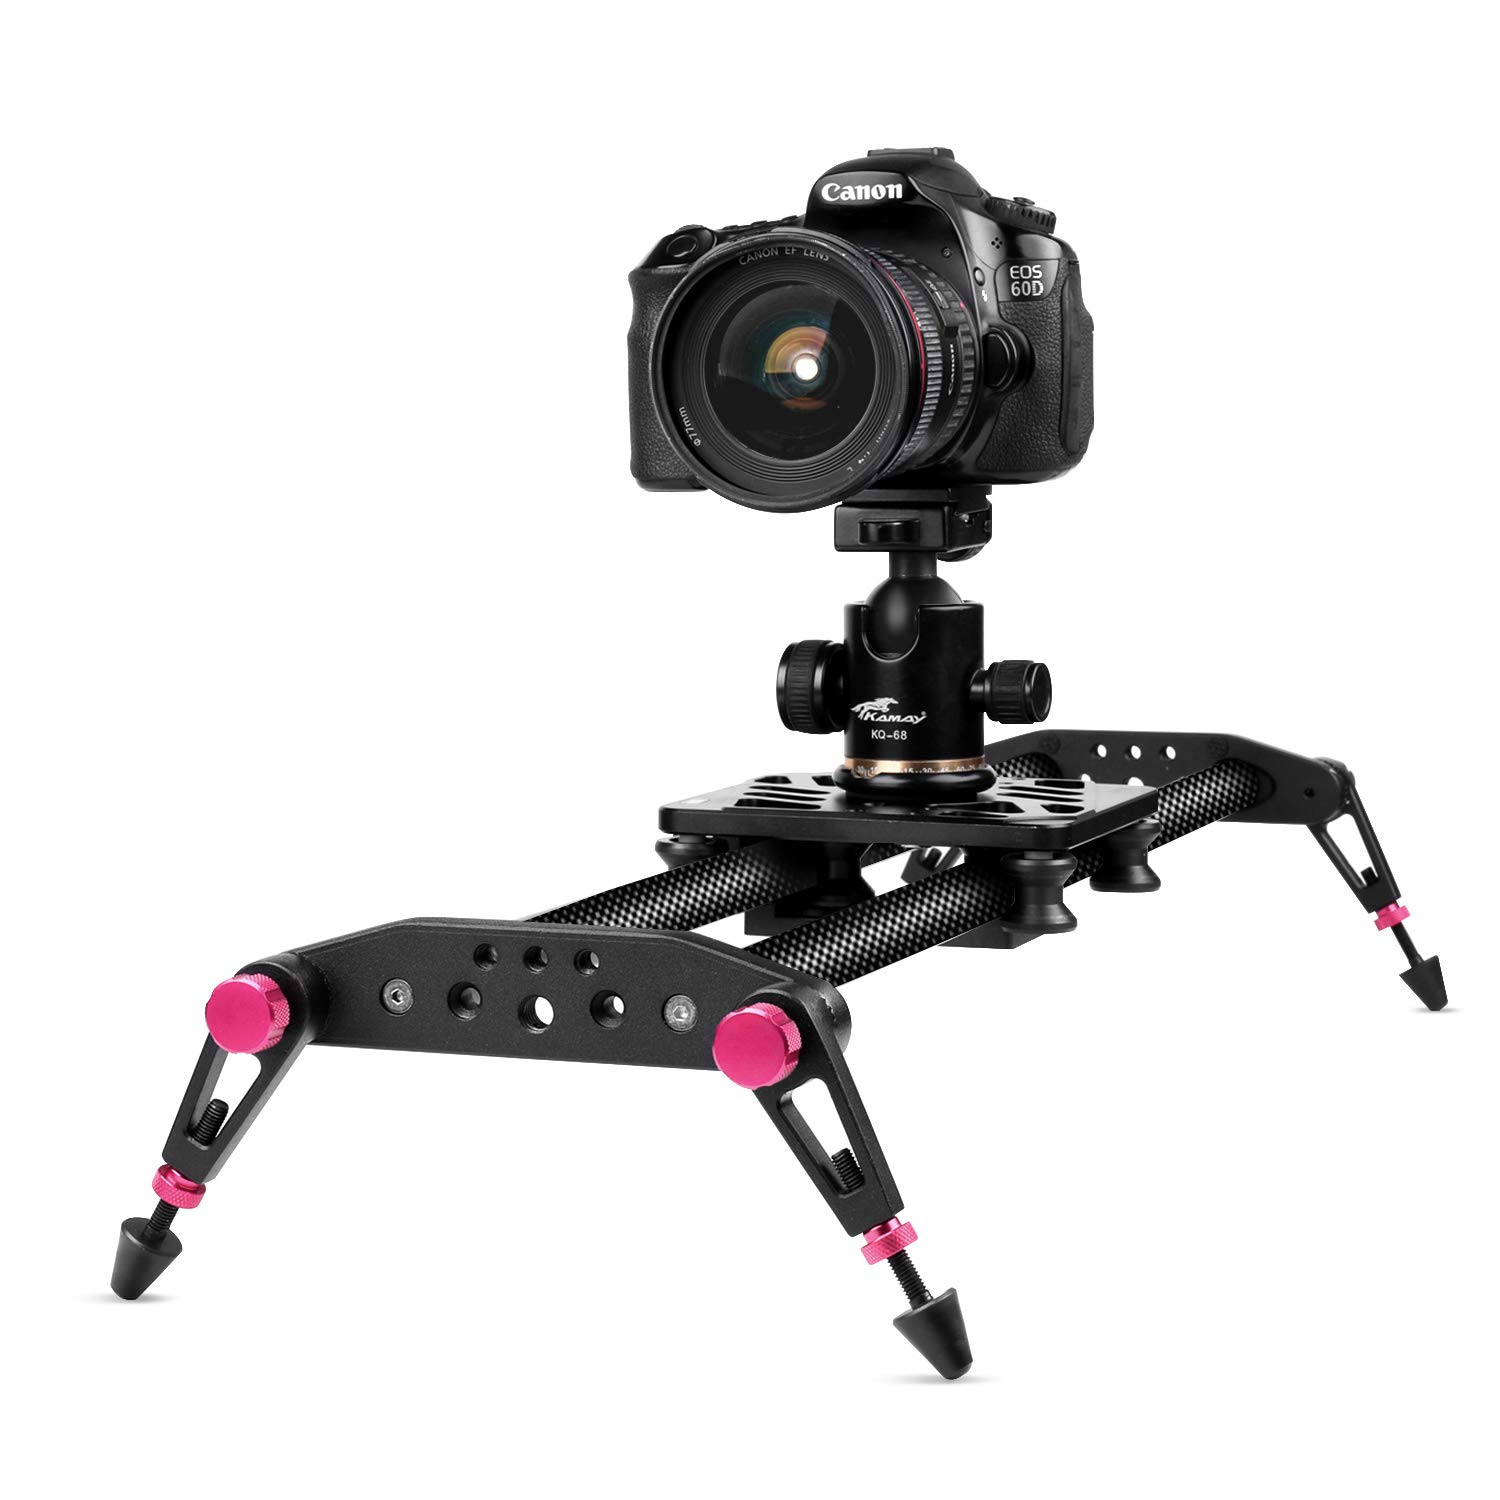 TNP 40 inches / 100cm Camera Slider for DSLR, Carbon Fiber Dolly Track Video Stabilizer Rail System with 26.5lbs / 12kg Loading, 6 Roller Bearing for Cinematic Film Video Footage Studio Photography by TNP Products